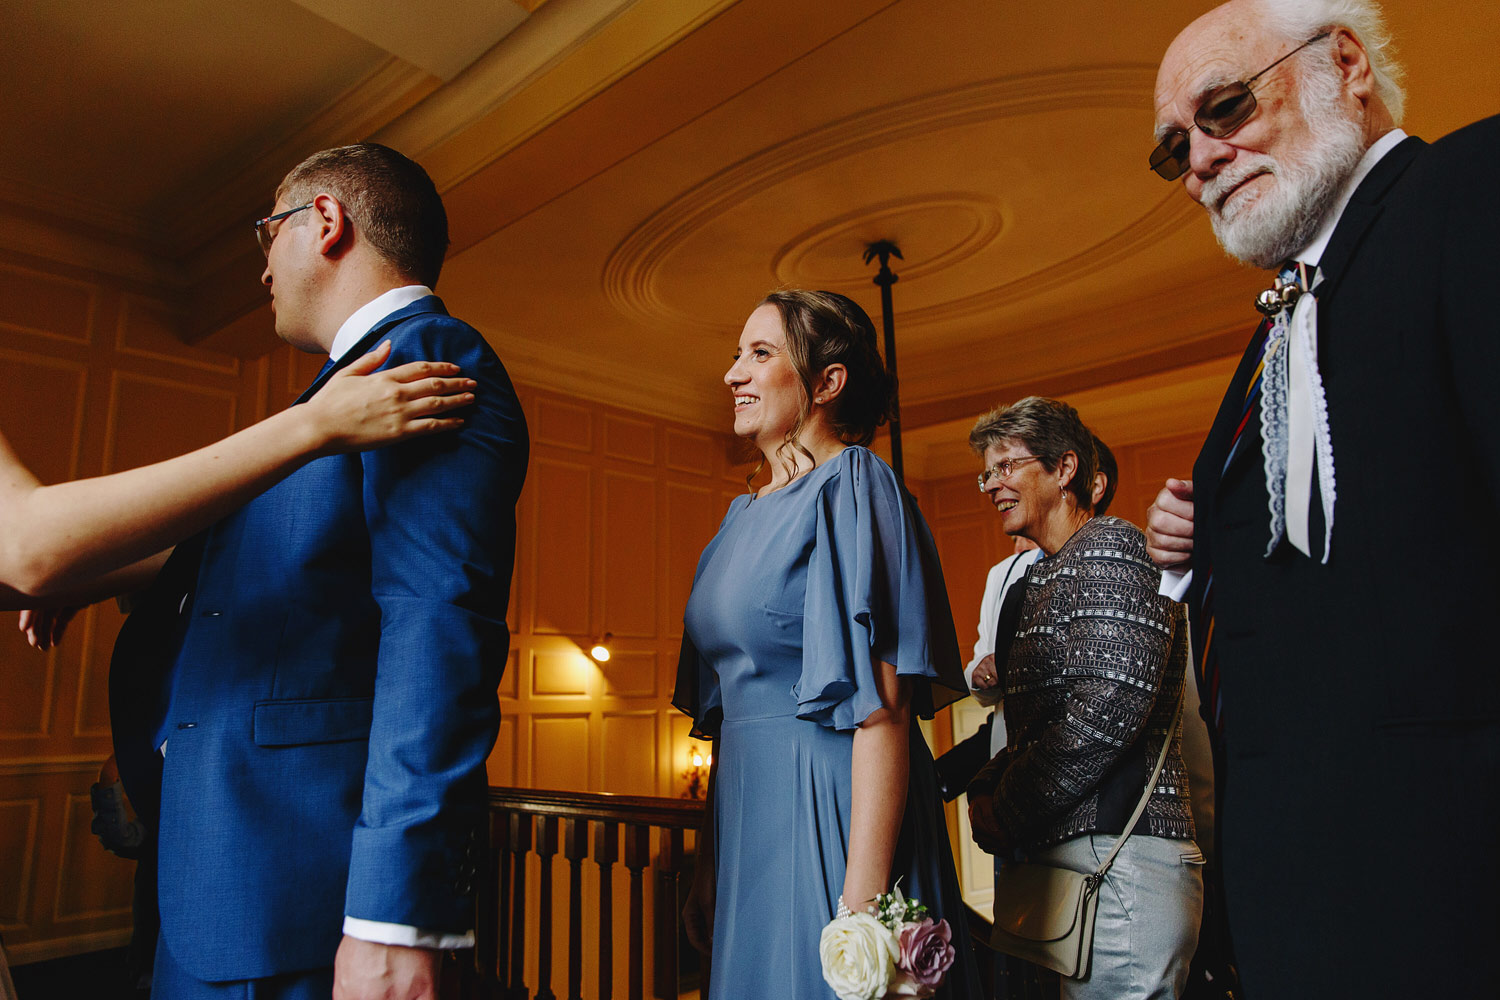 A receiving line at Gosfield Hall